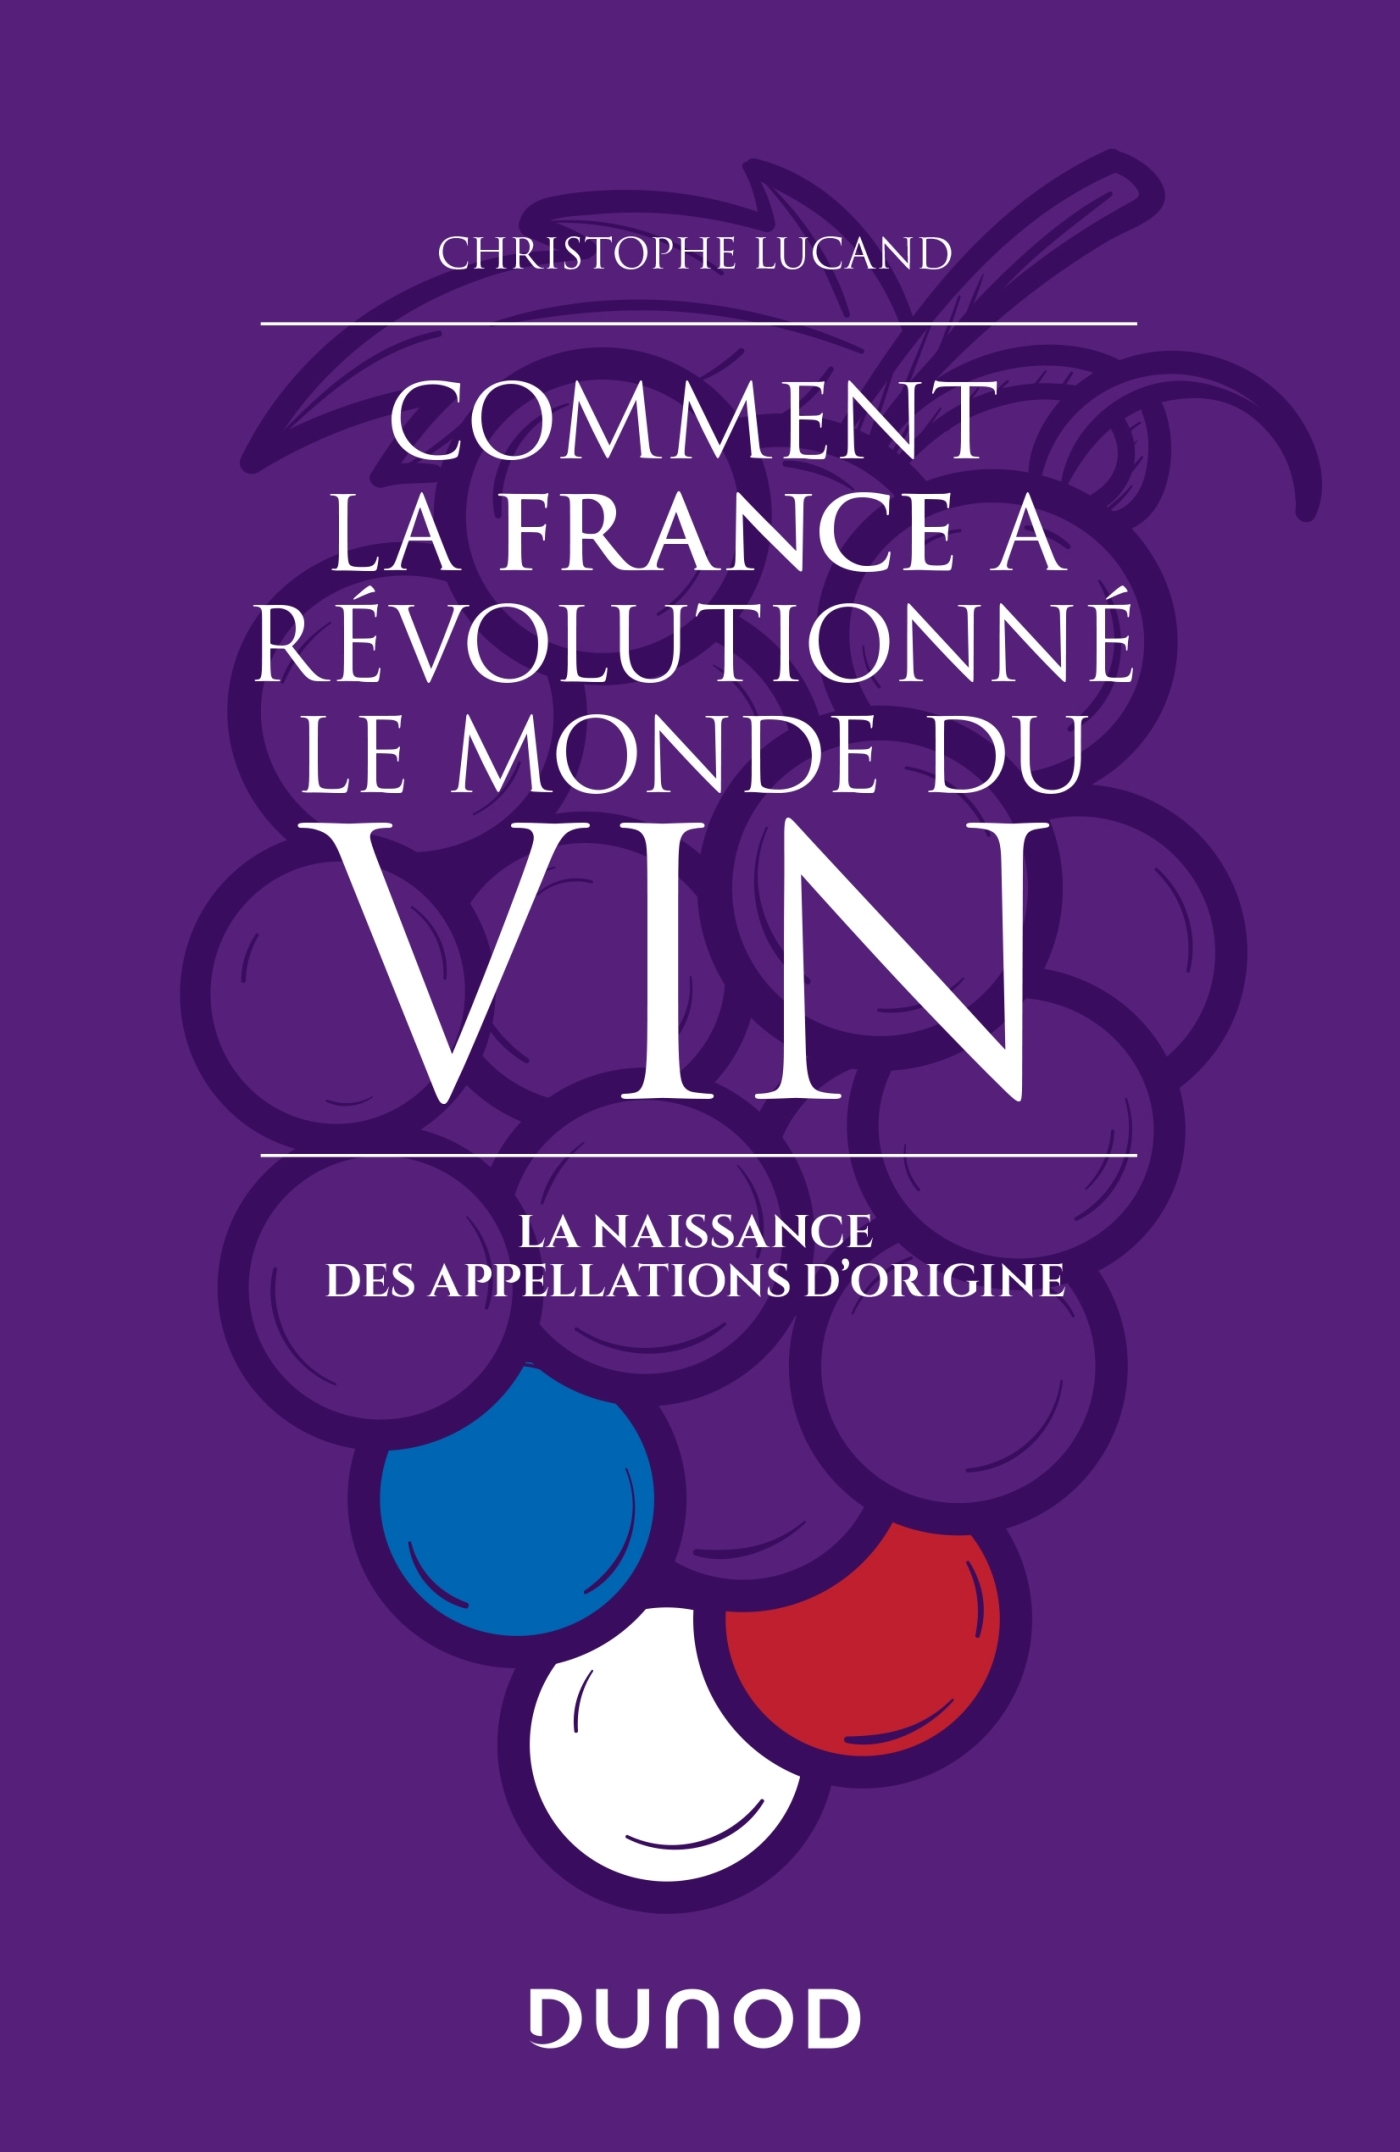 COMMENT LA FRANCE A REVOLUTIONNE LE MONDE DU VIN - LA NAISSANCE DES APPELLATIONS D'ORIGINE